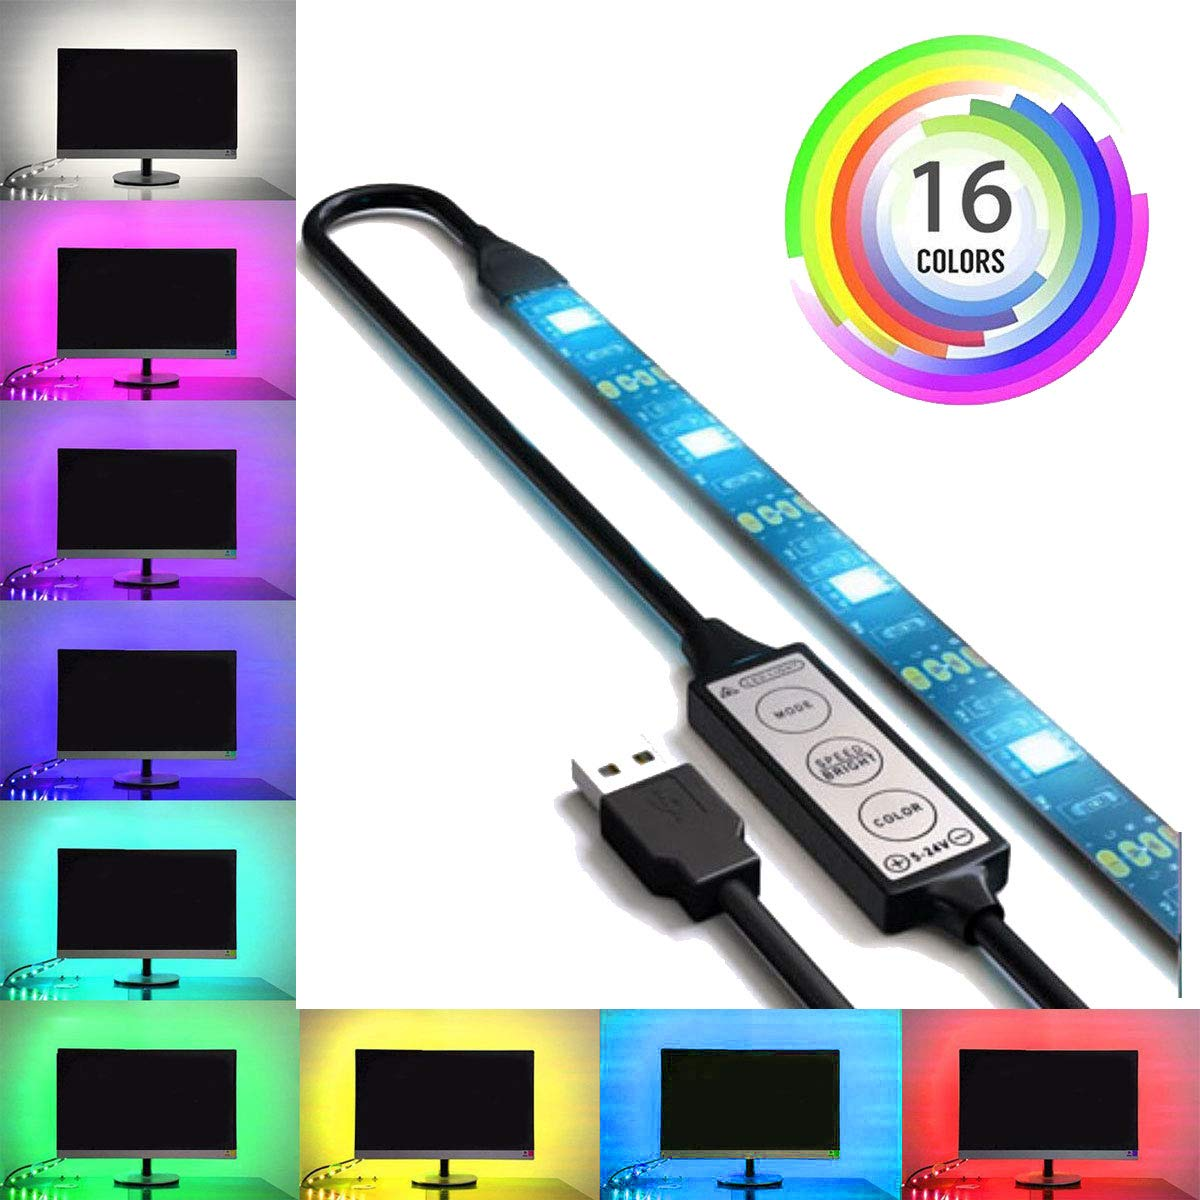 USB LED Lighting Strip for HDTV - Extra Large (158in / 4m) - Multi-Color RGB - USB LED Backlight Strip with Dimmer for Bias Lighting HDTV, Flat Screen TV LCD, Desktop Monitors, Kitchen Cabinets… by SPE (Image #1)